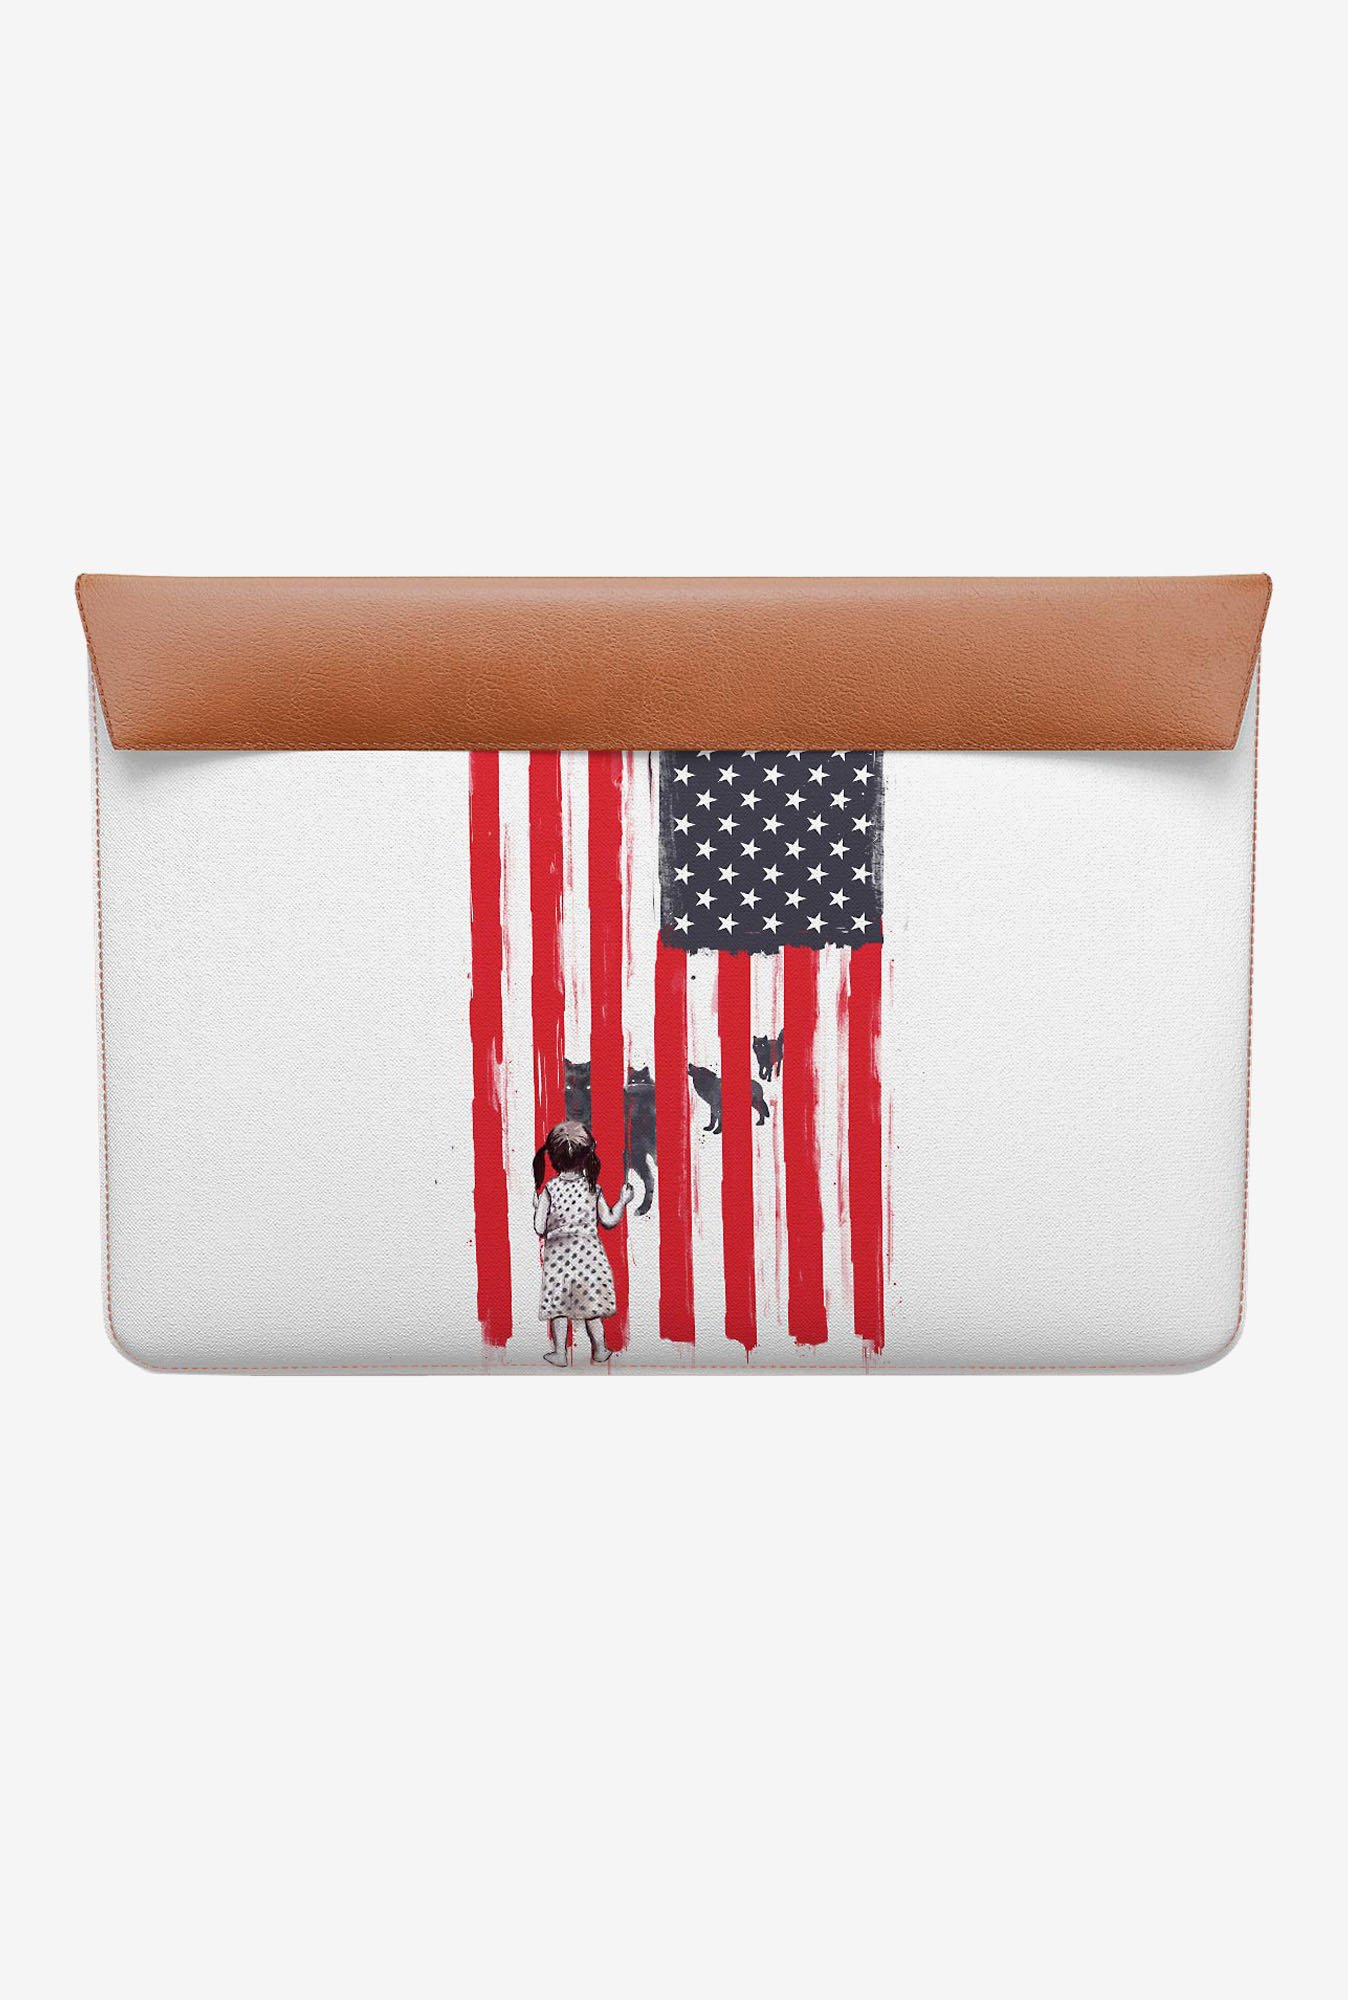 DailyObjects Little Girl MacBook Pro 15 Envelope Sleeve